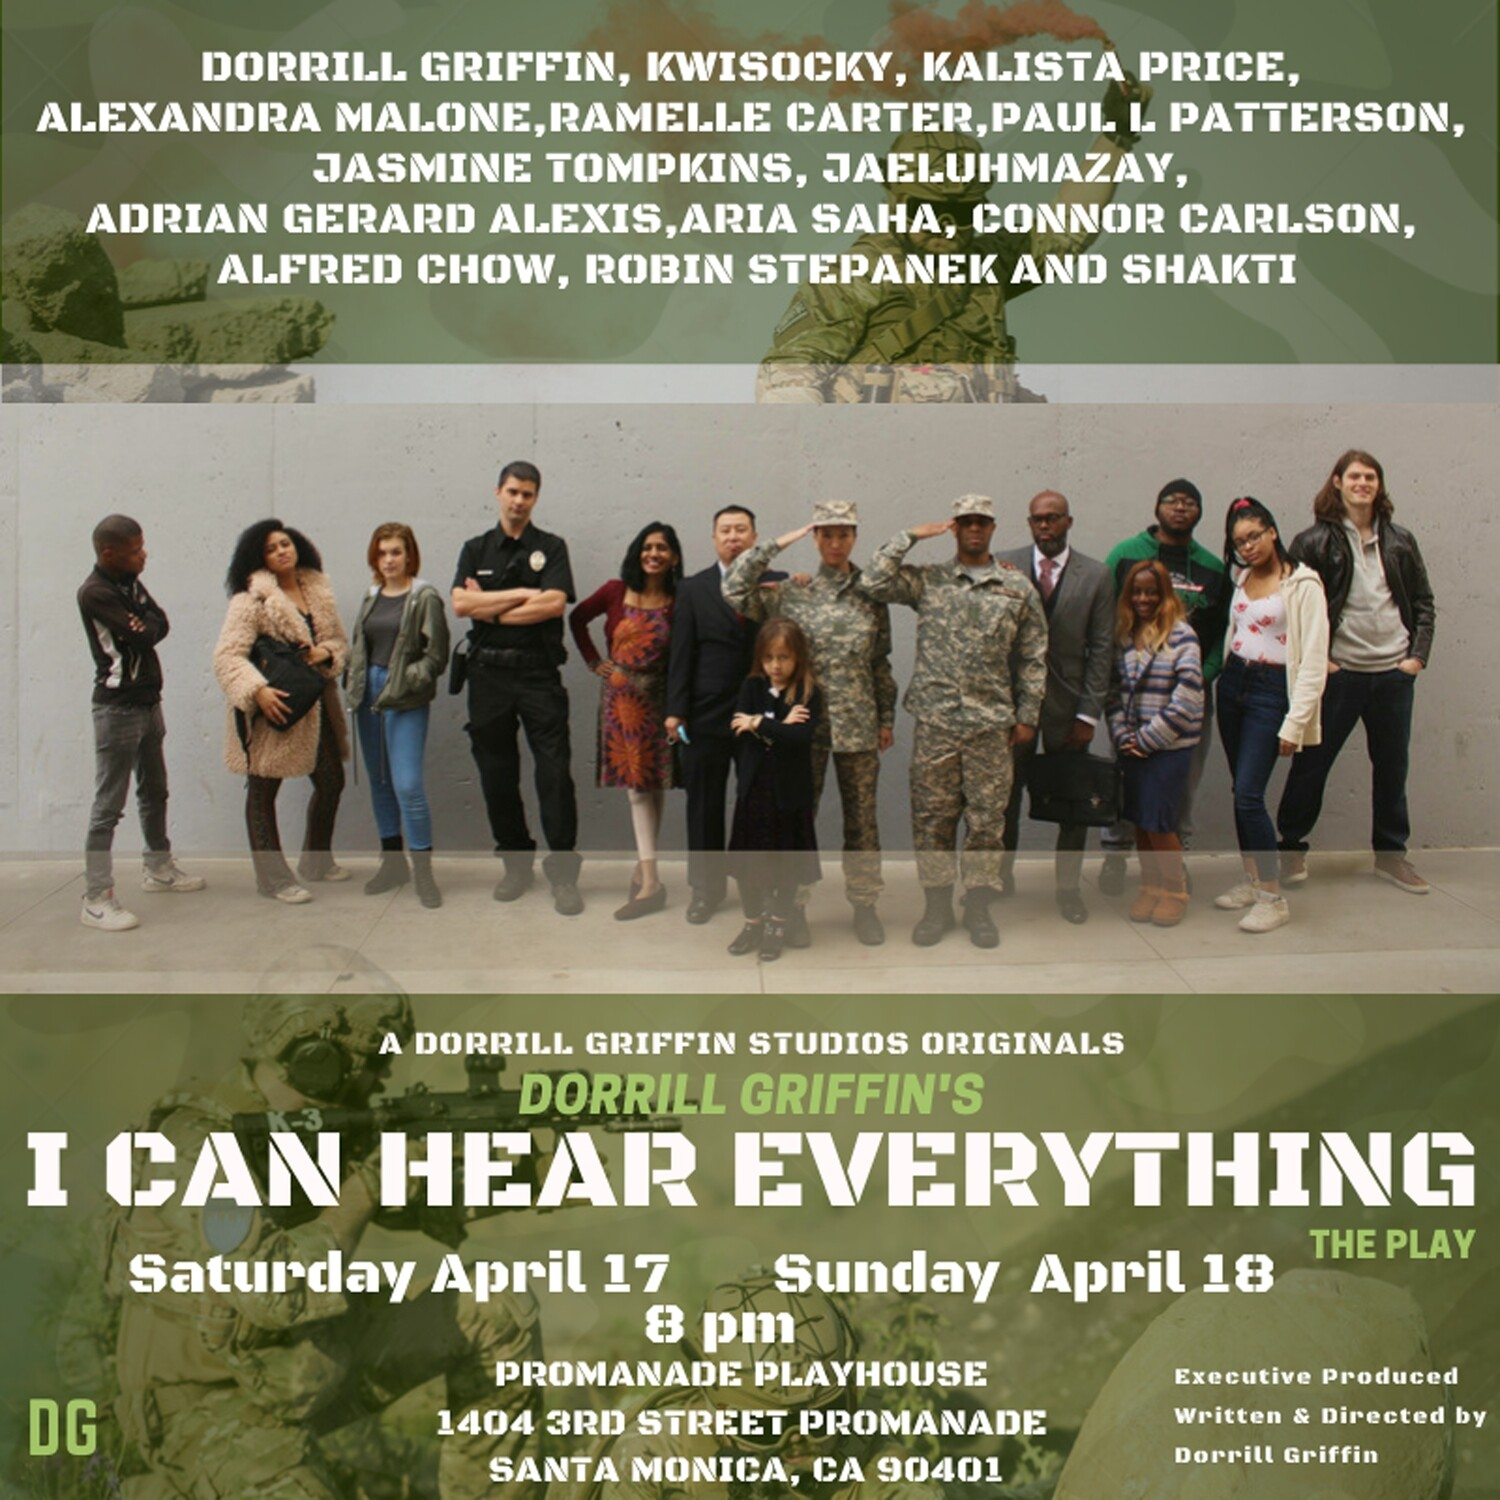 I CAN HEAR EVERYTHING APRIL 18TH 4PM